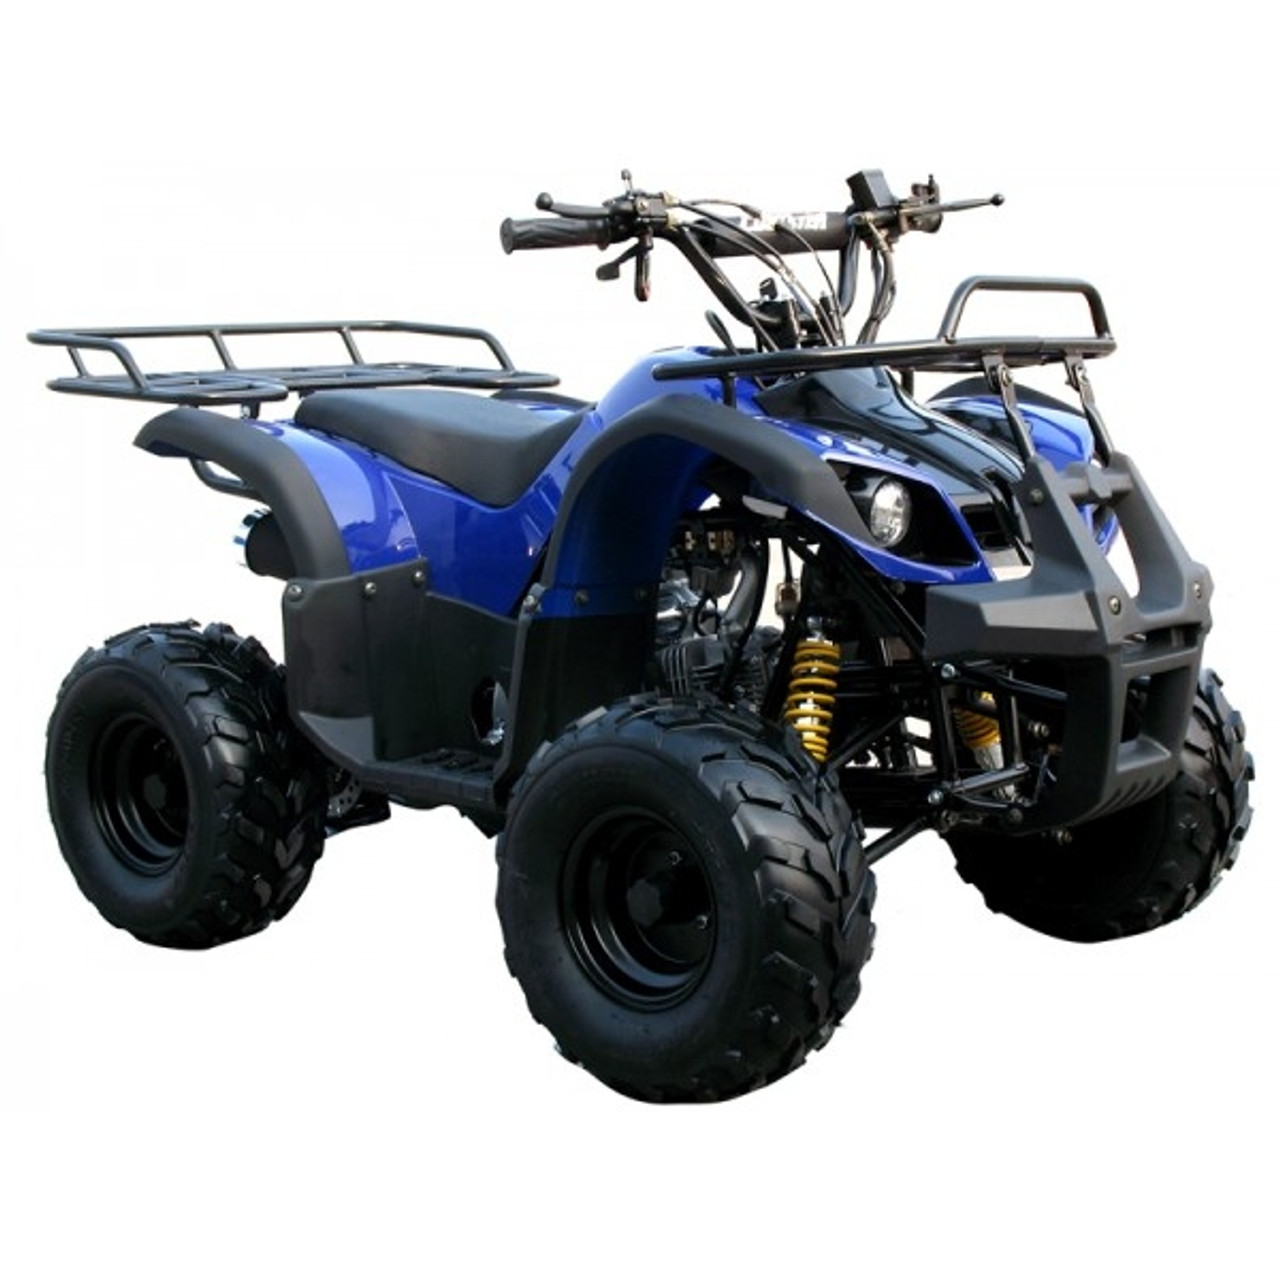 """KODIAK-HD 125CC ATV with REVERSE Big 16"""" Tire - Fully Assembled and Tested"""